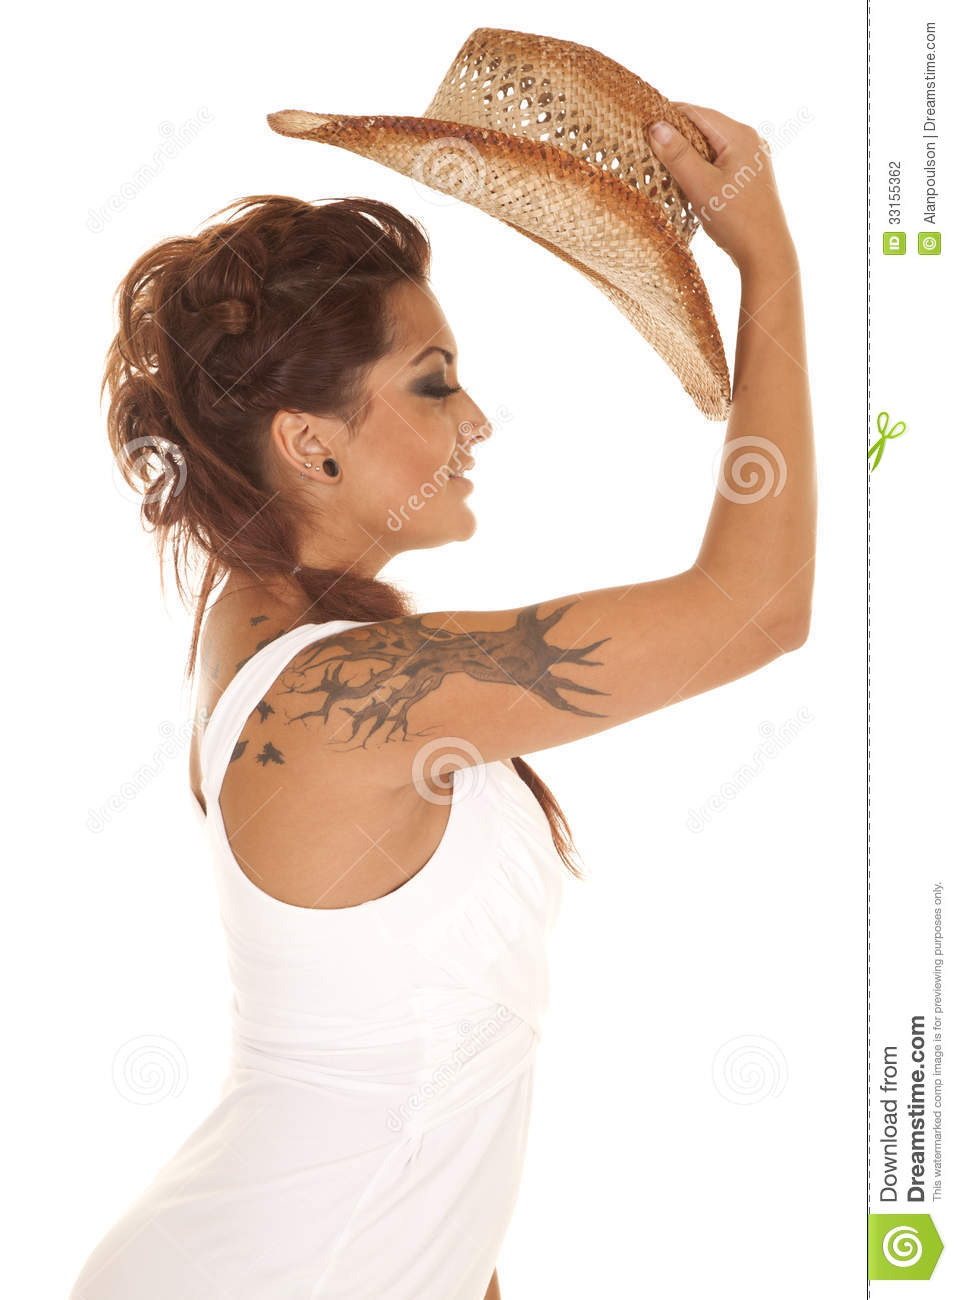 Woman Tattoos Cowgirl Put Hat On Stock Photo Image 33155362